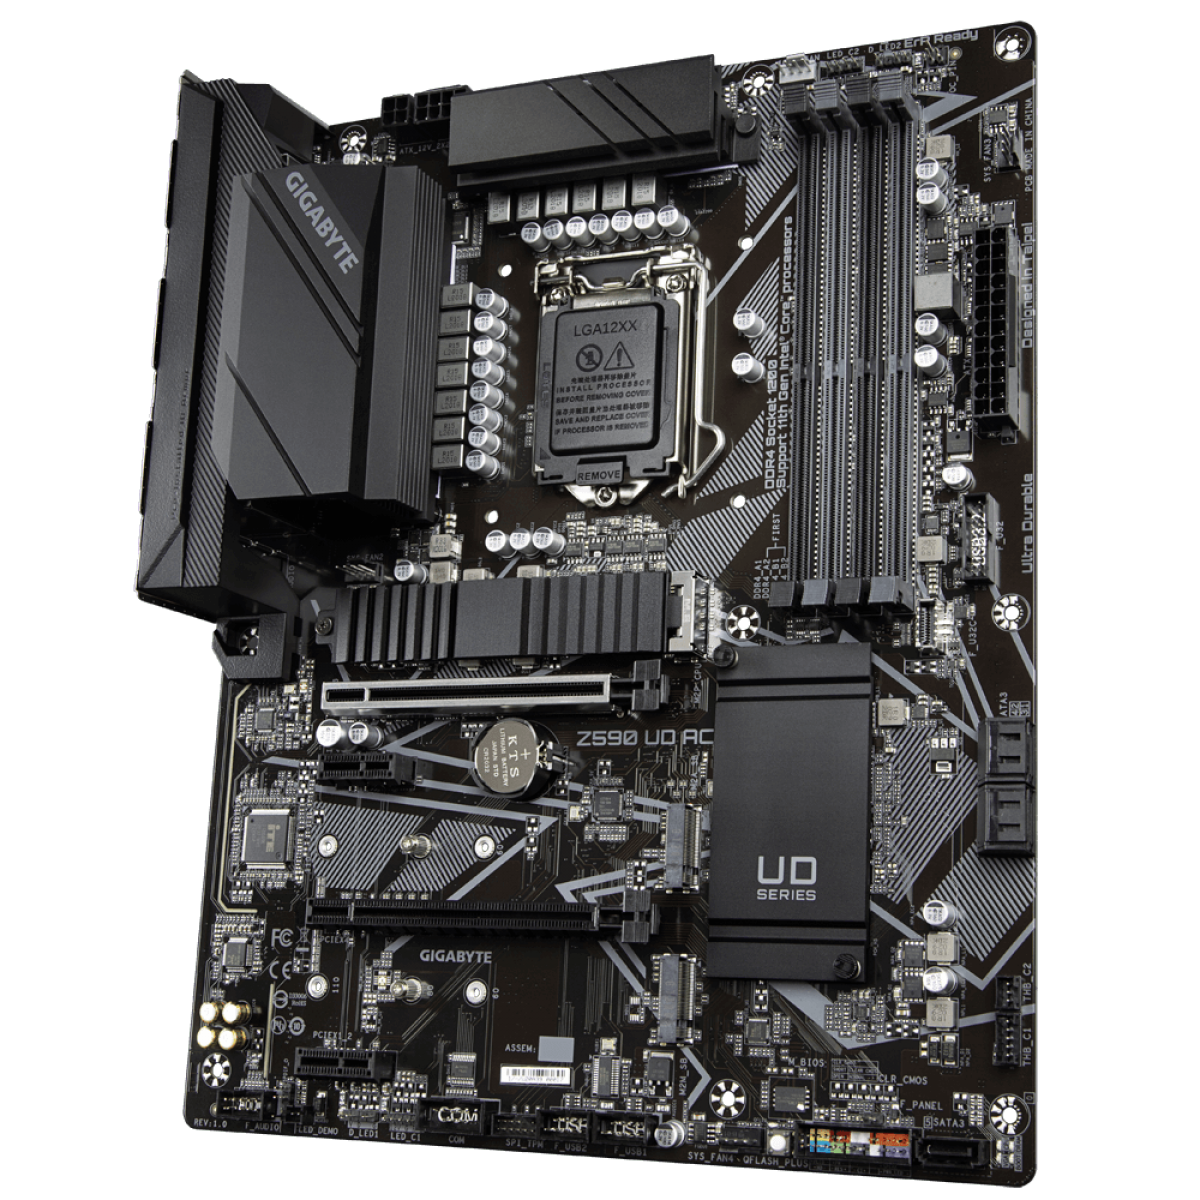 Placa Mãe GIGABYTE Z590 UD AC, Intel Z590 Express Chipset, Socket 1200, ATX, DDR4